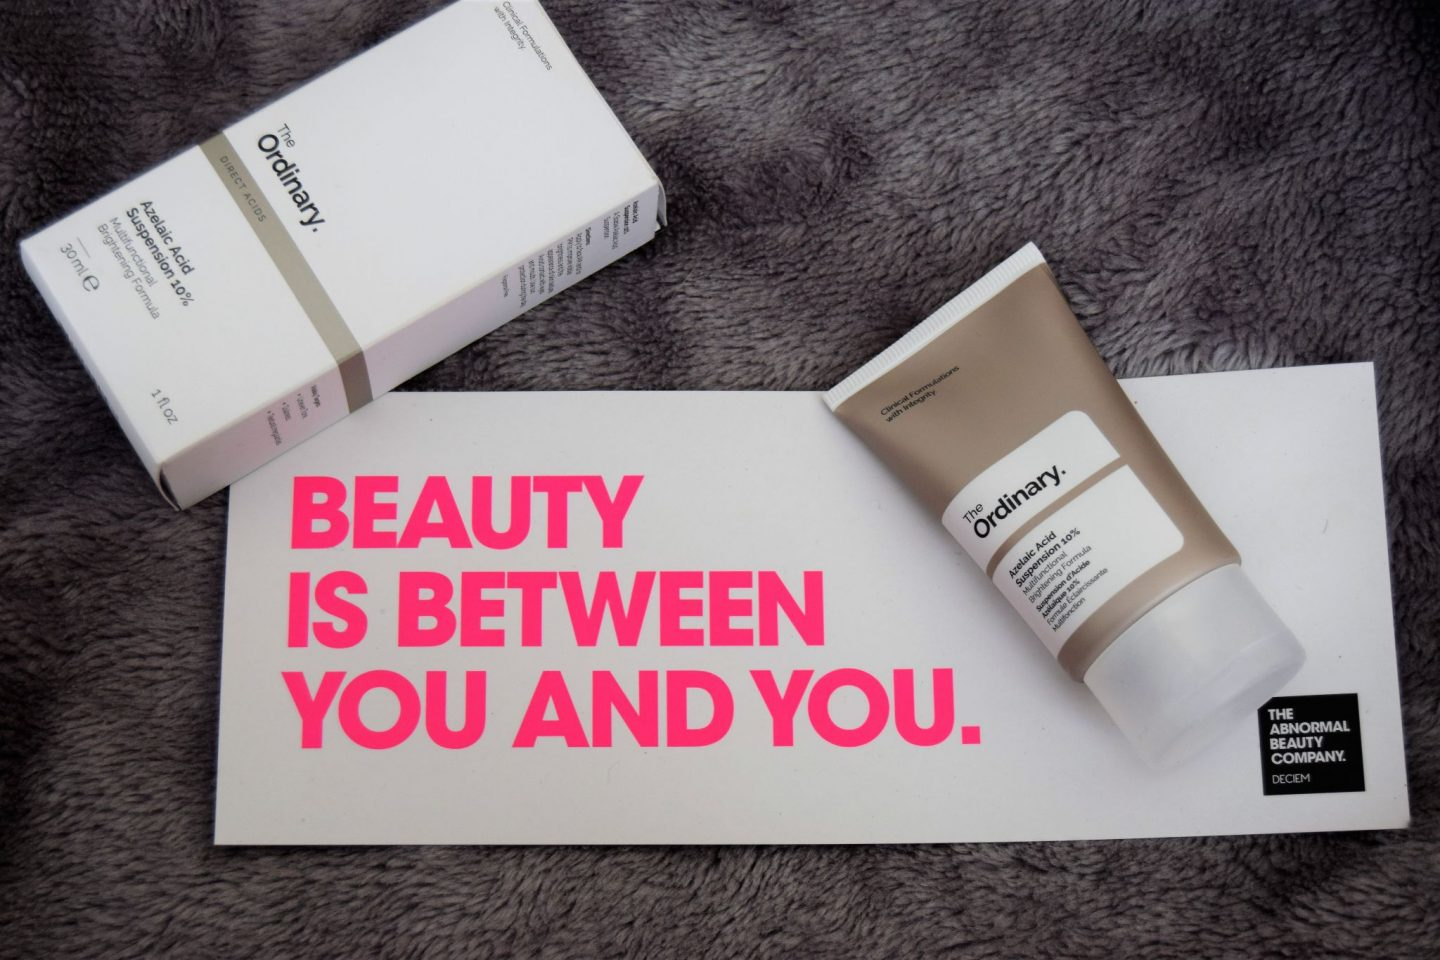 DSC 3640 1440x960 - Sensitive Skin: What Products To Buy From The Ordinary